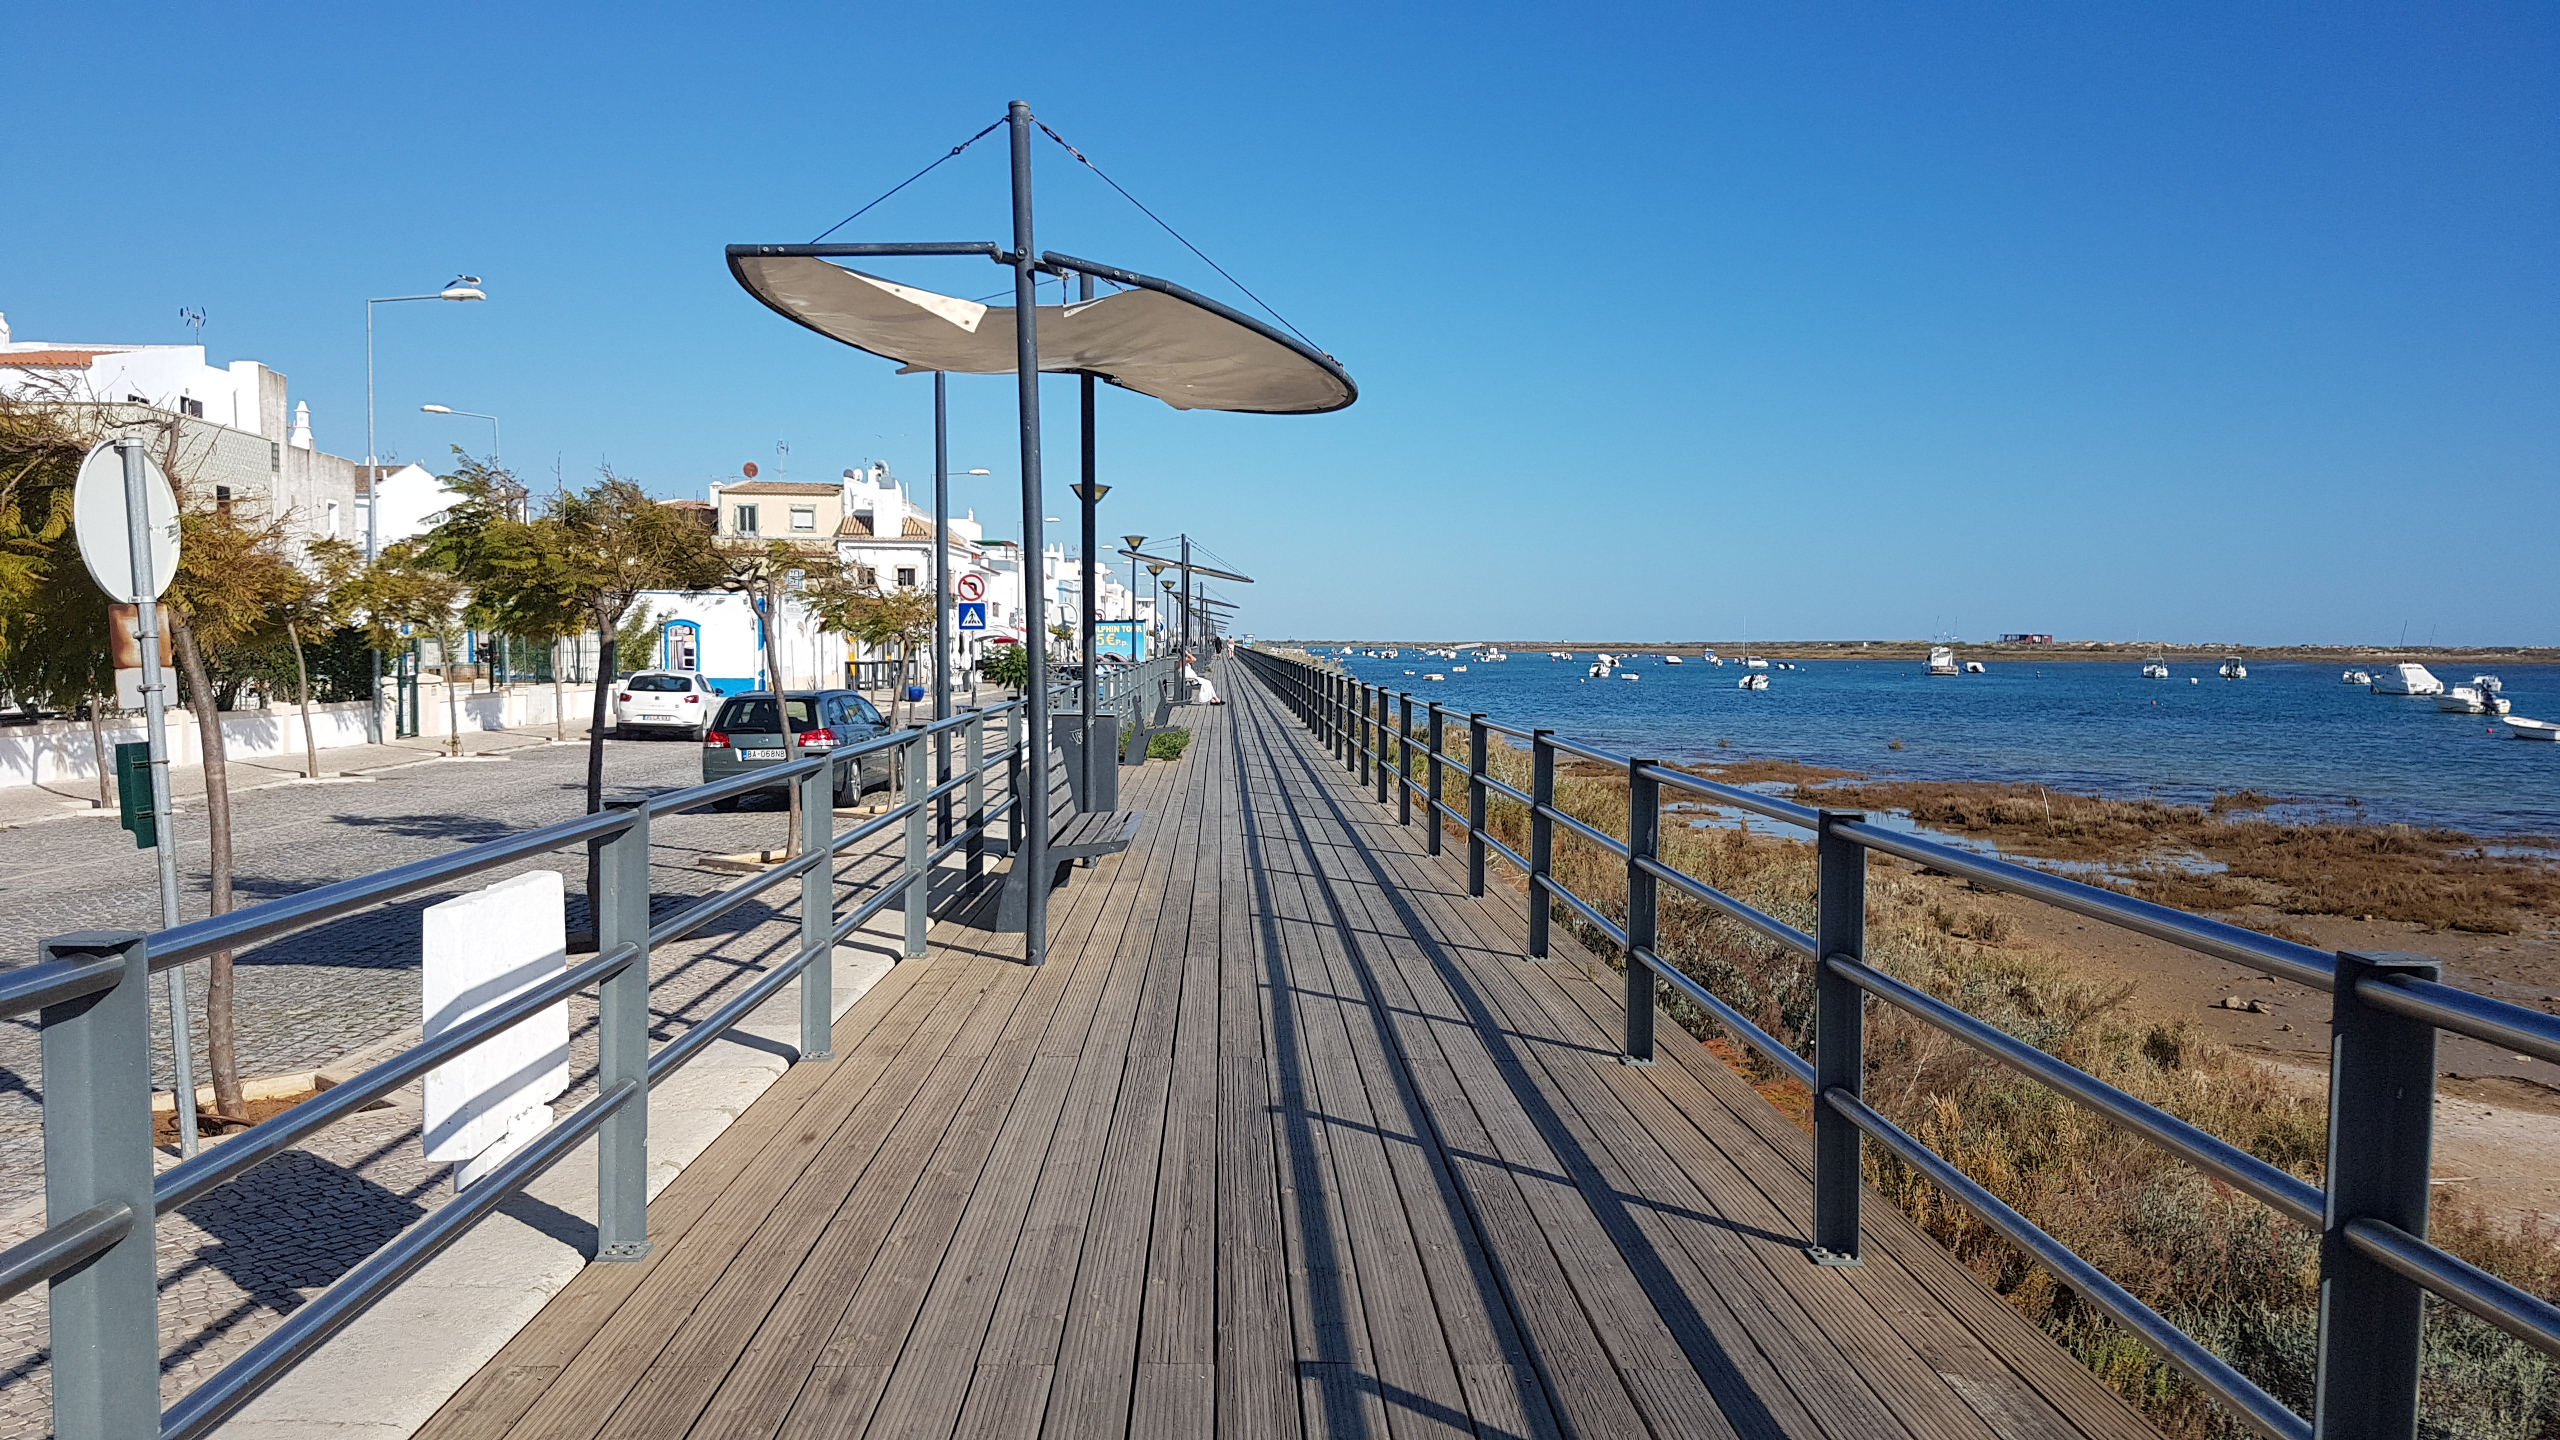 Cabanas boardwalk along the lagoon